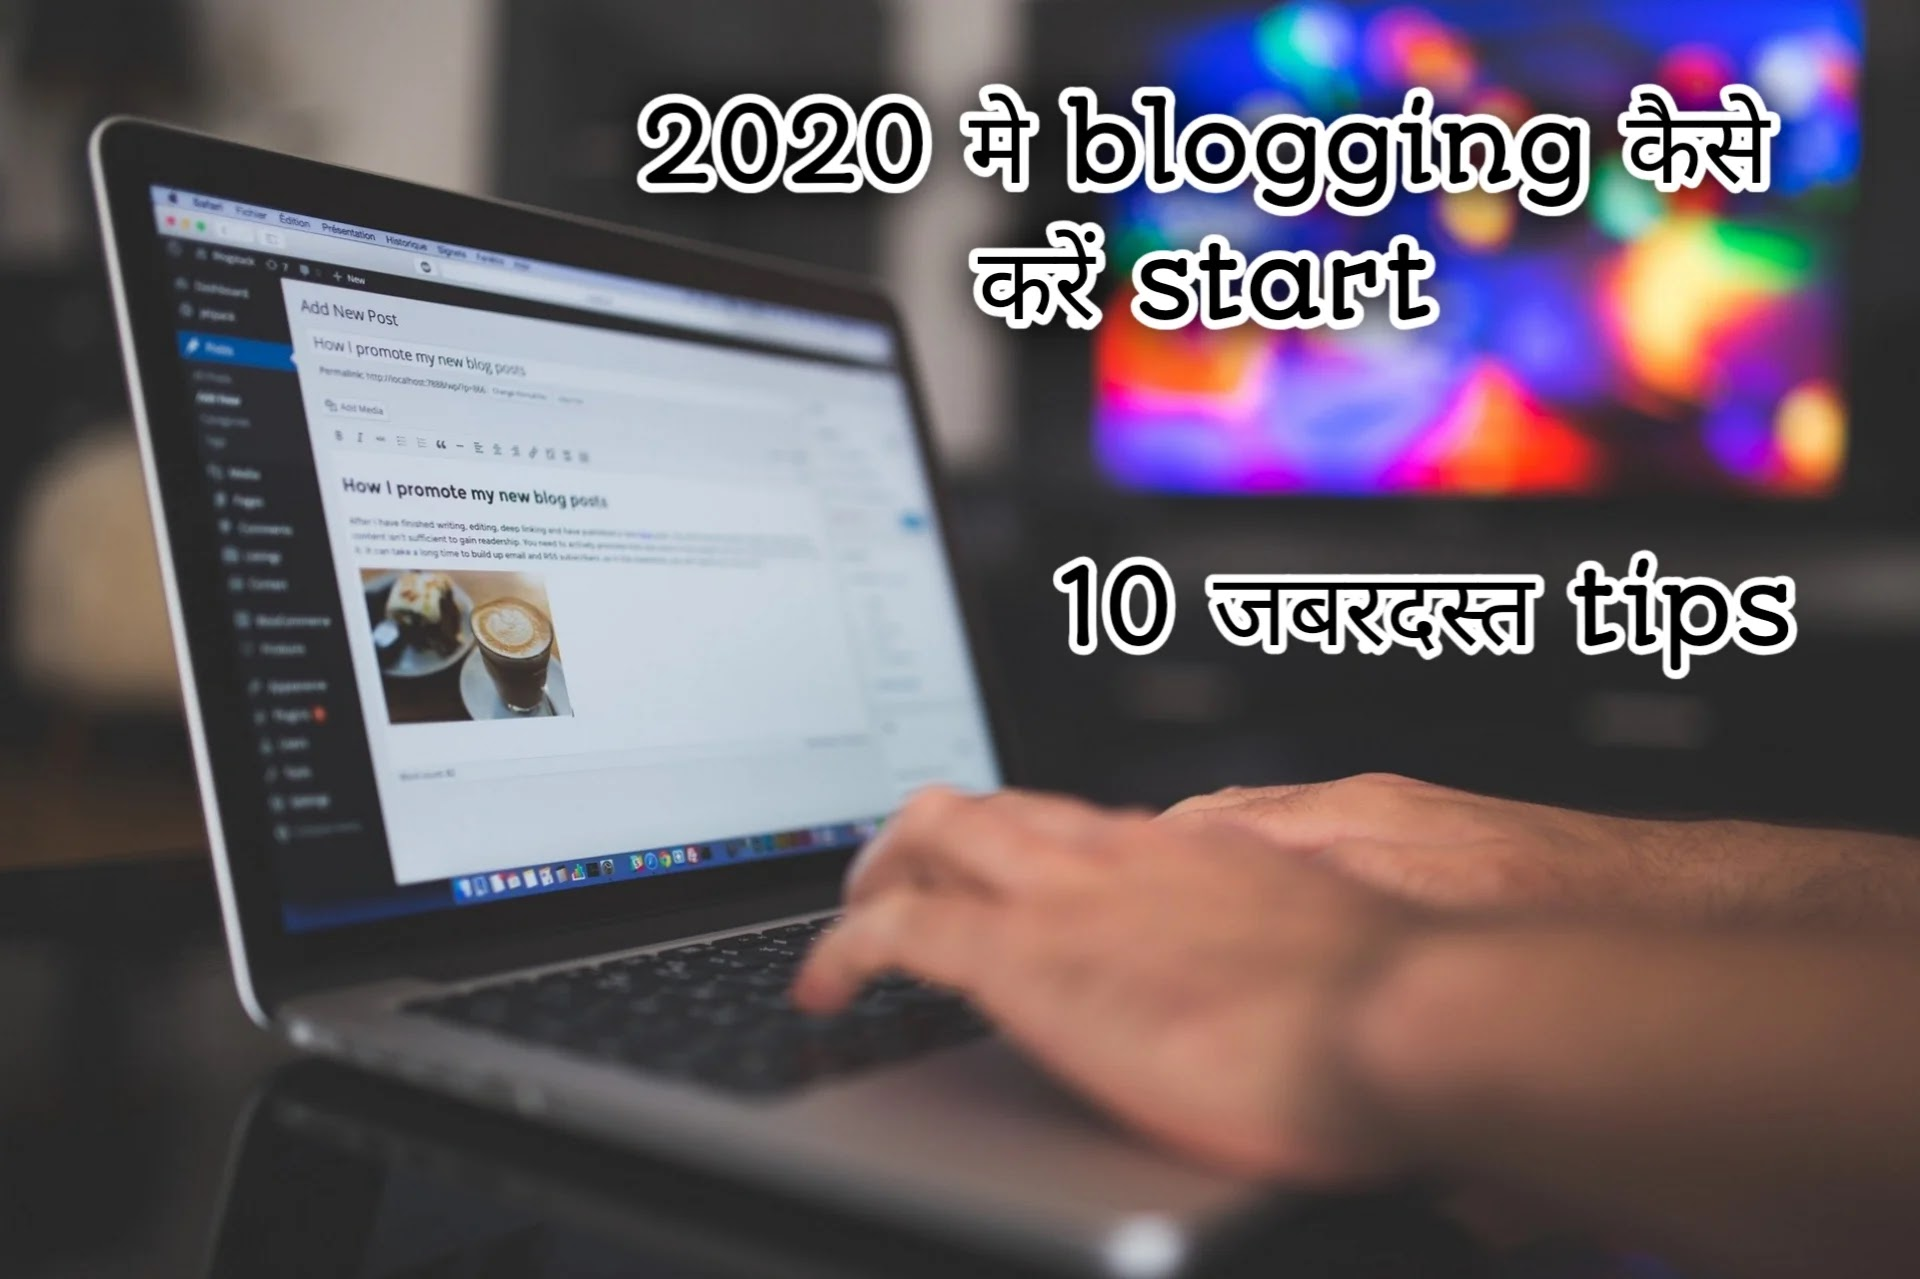 2020 me blogging kaise karen 10 tips